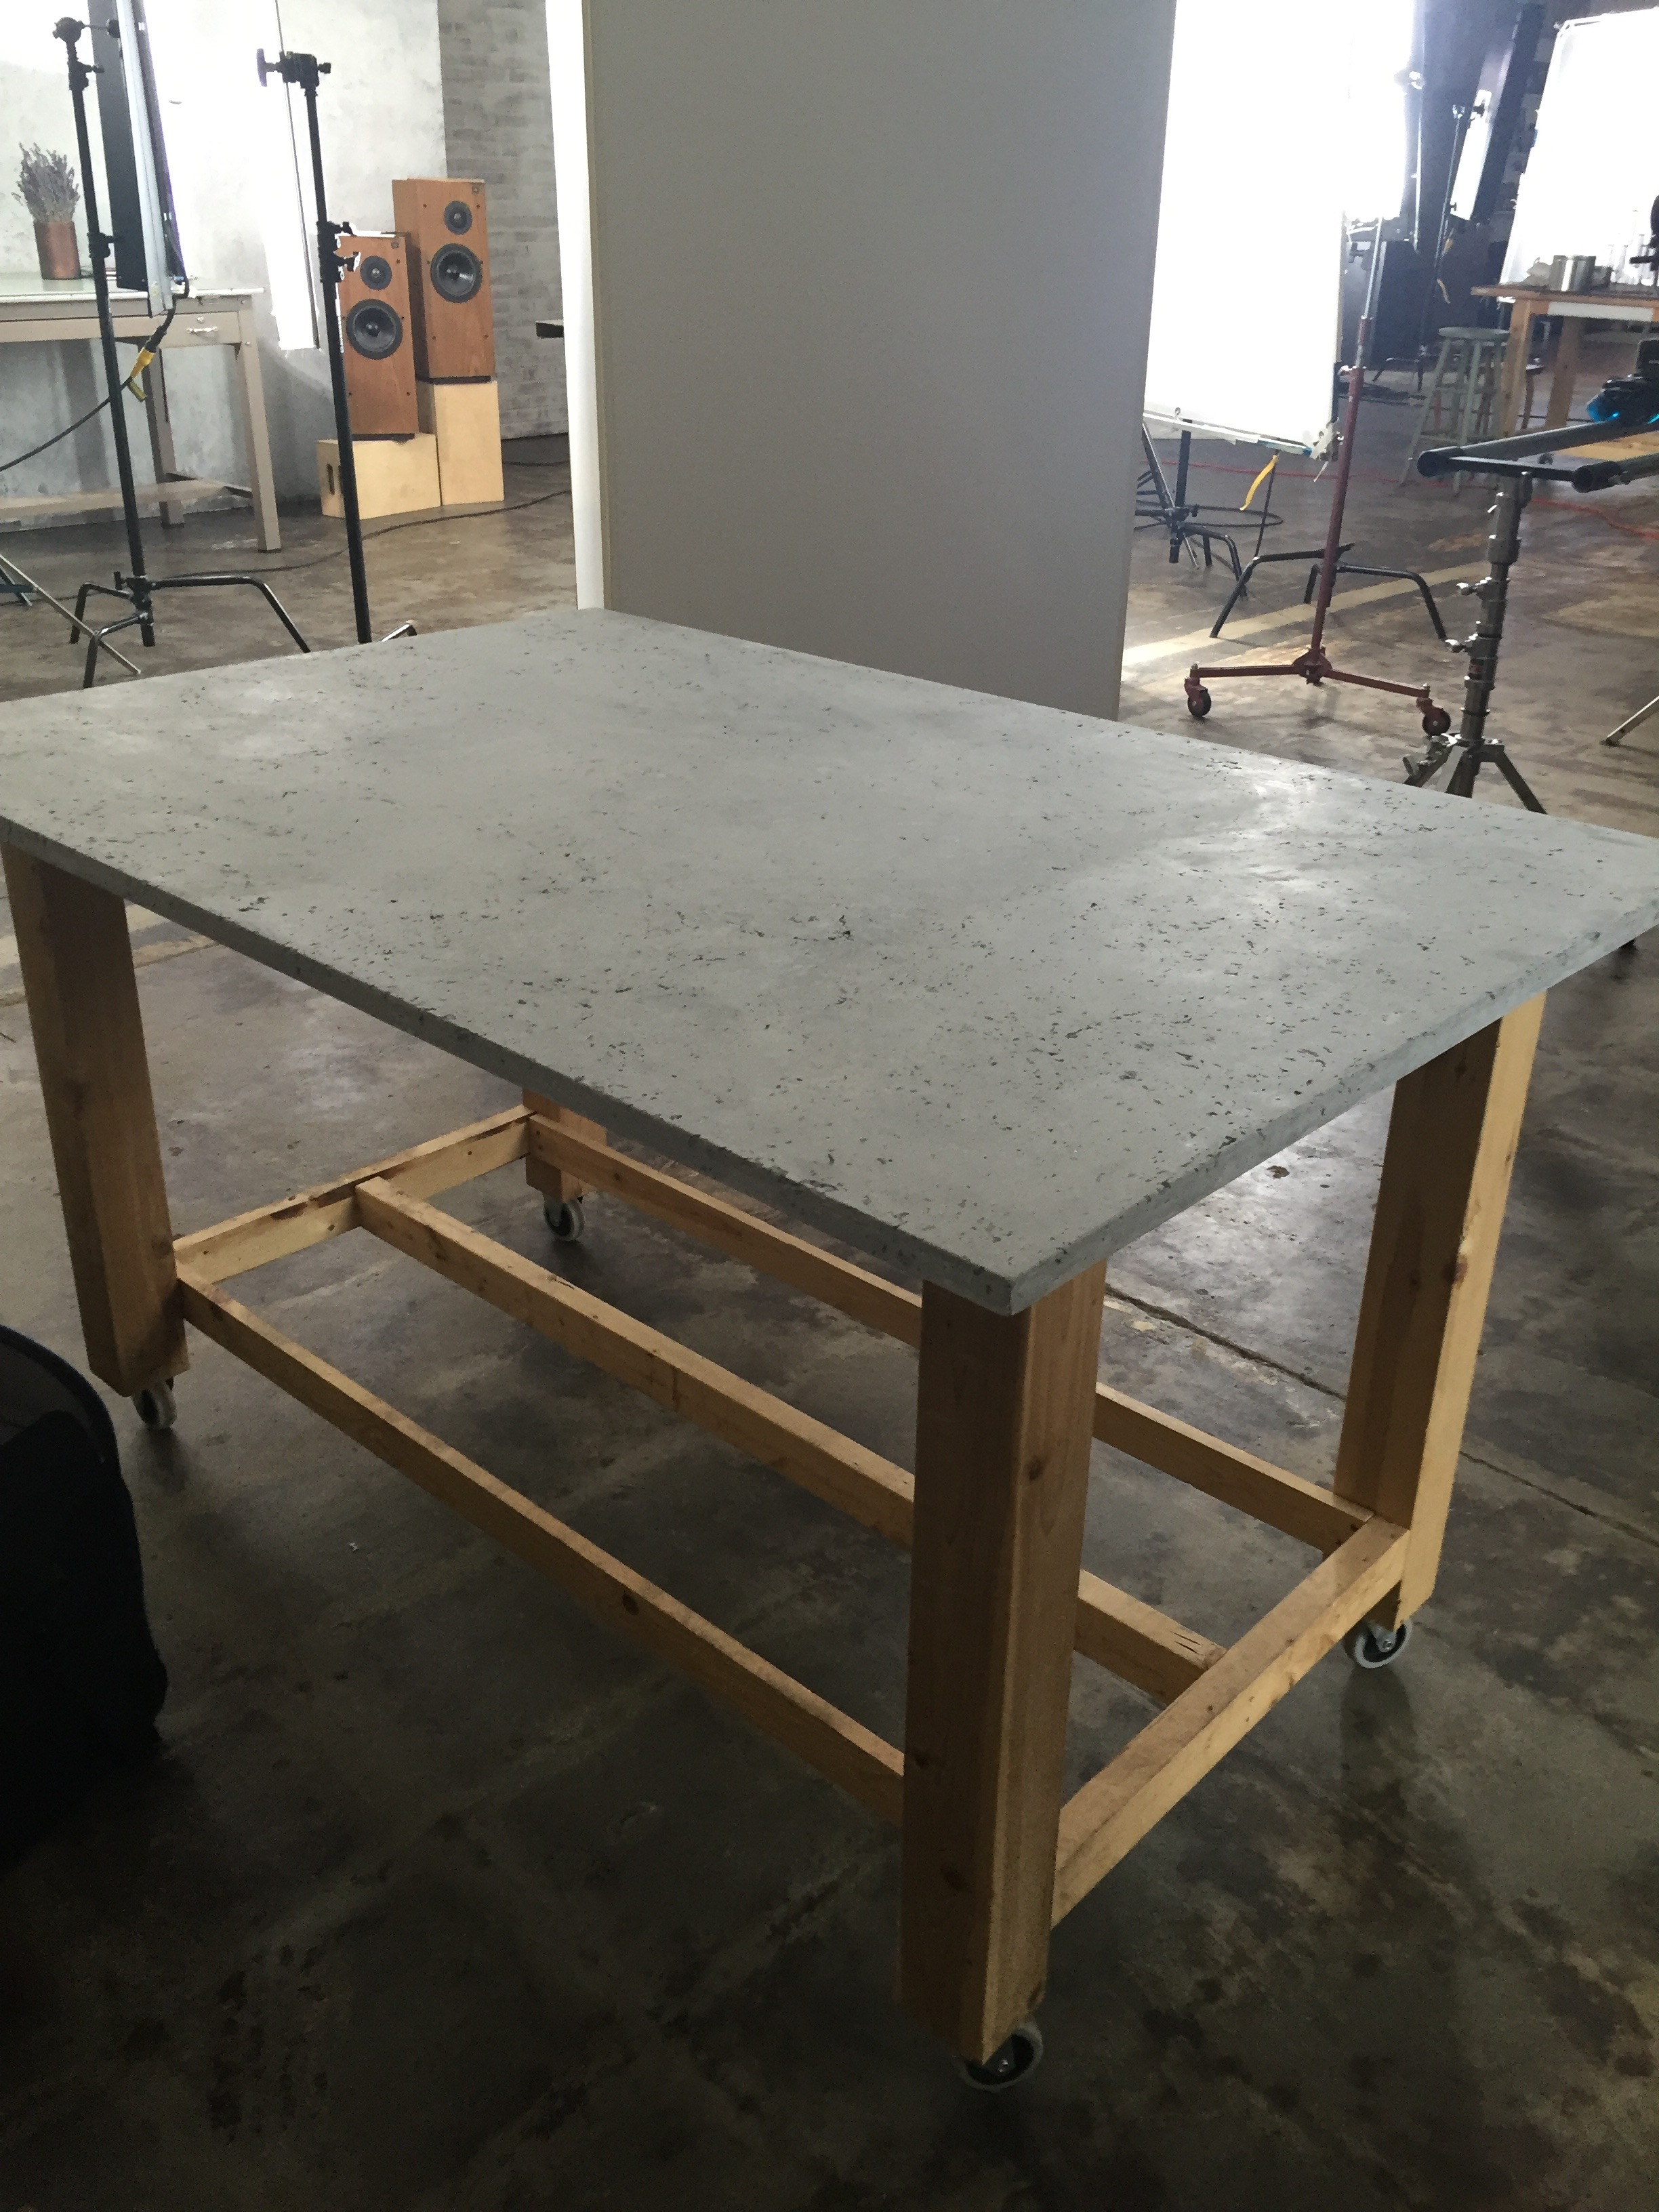 Textured Concrete Tabletop